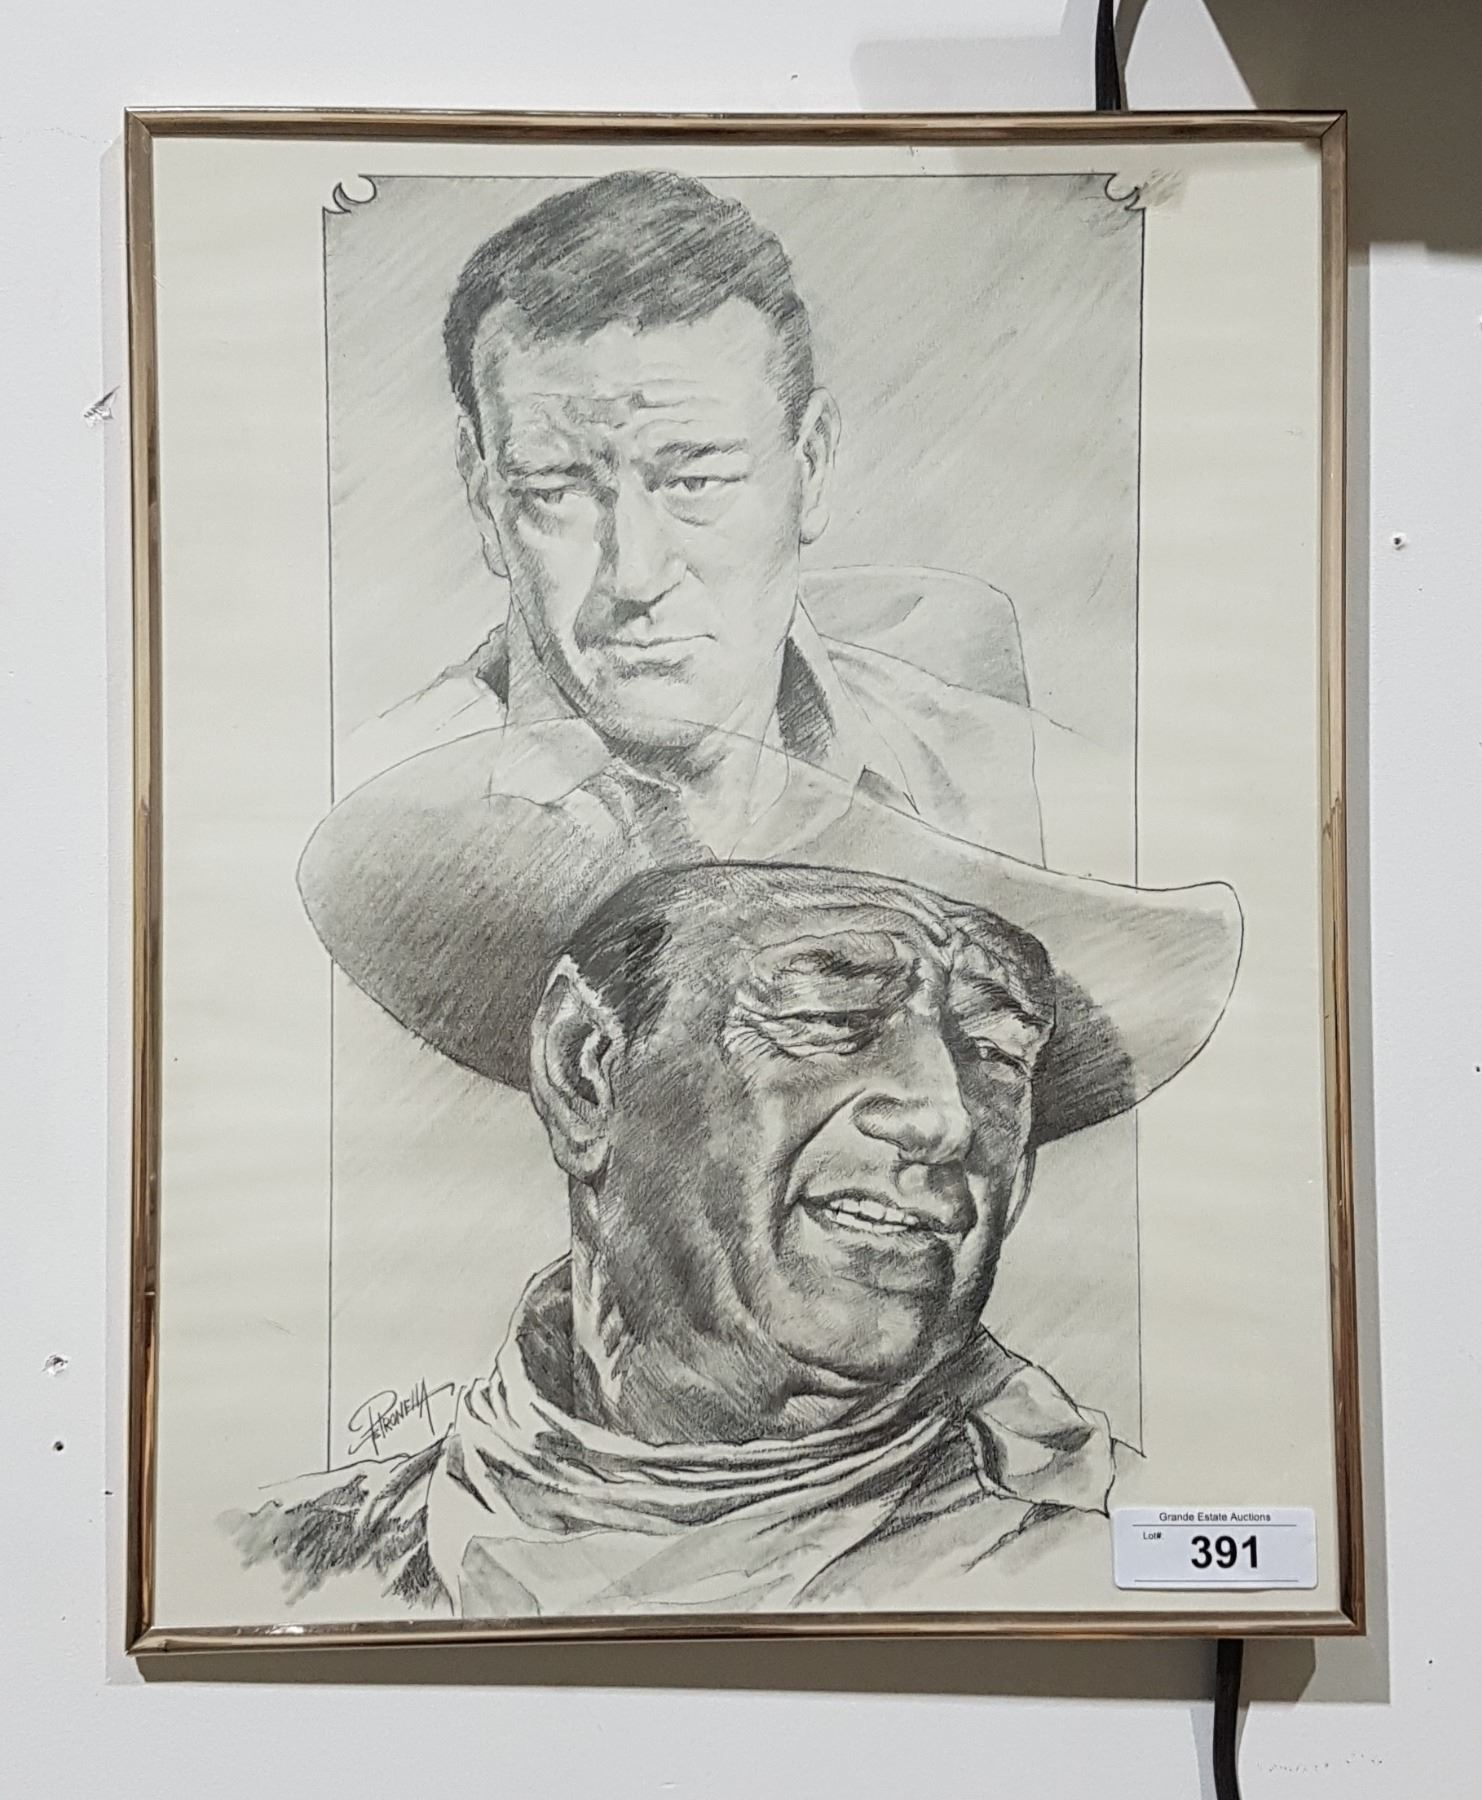 ORIGINAL PENCIL DRAWING OF JOHN WAYNE